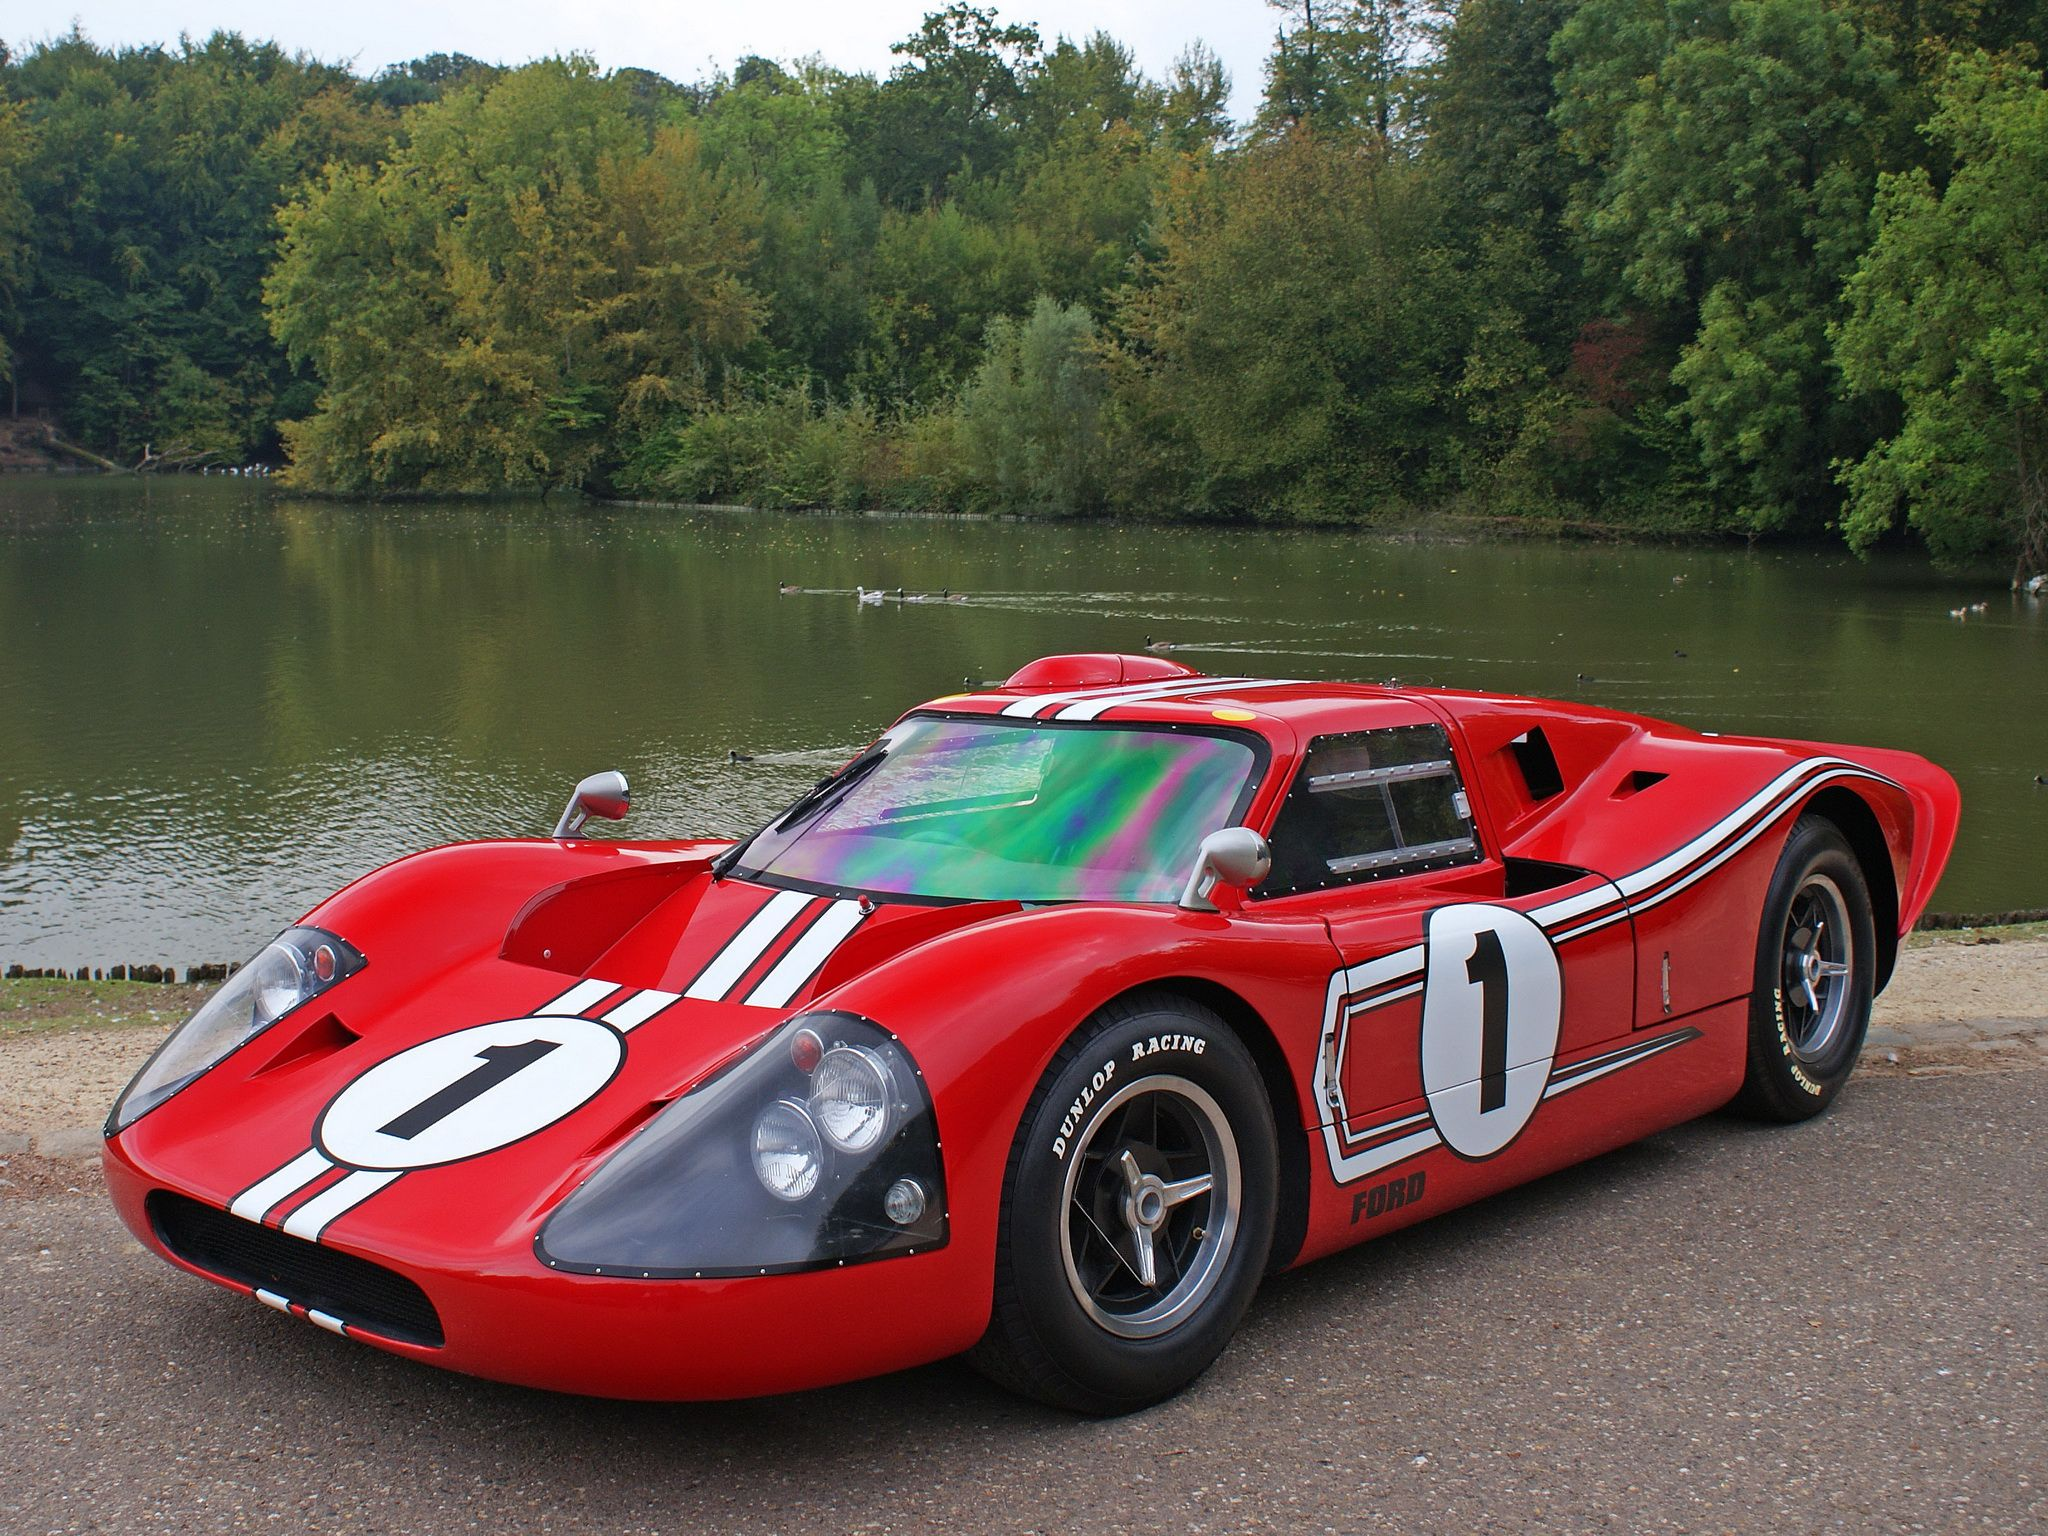 ford gt40 mkiv one of the most famous cars in racing history - 1966 Ford Gt40 Mk1